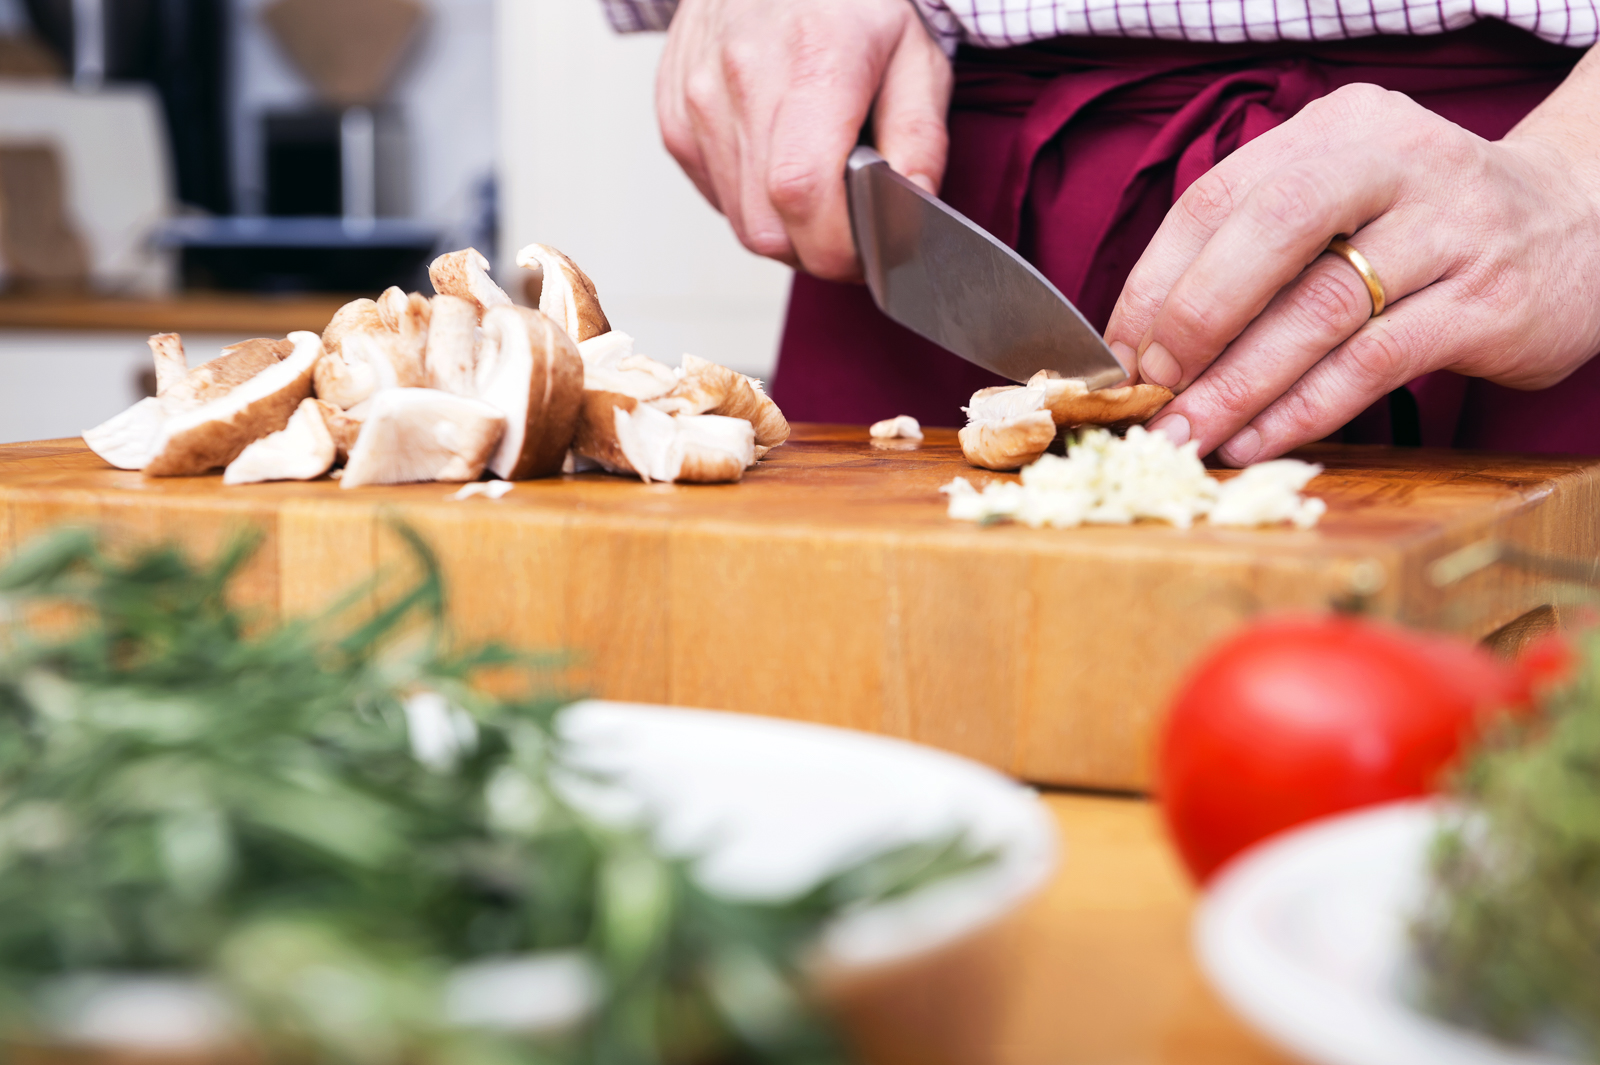 Midsection of man cutting mushrooms on chopping board